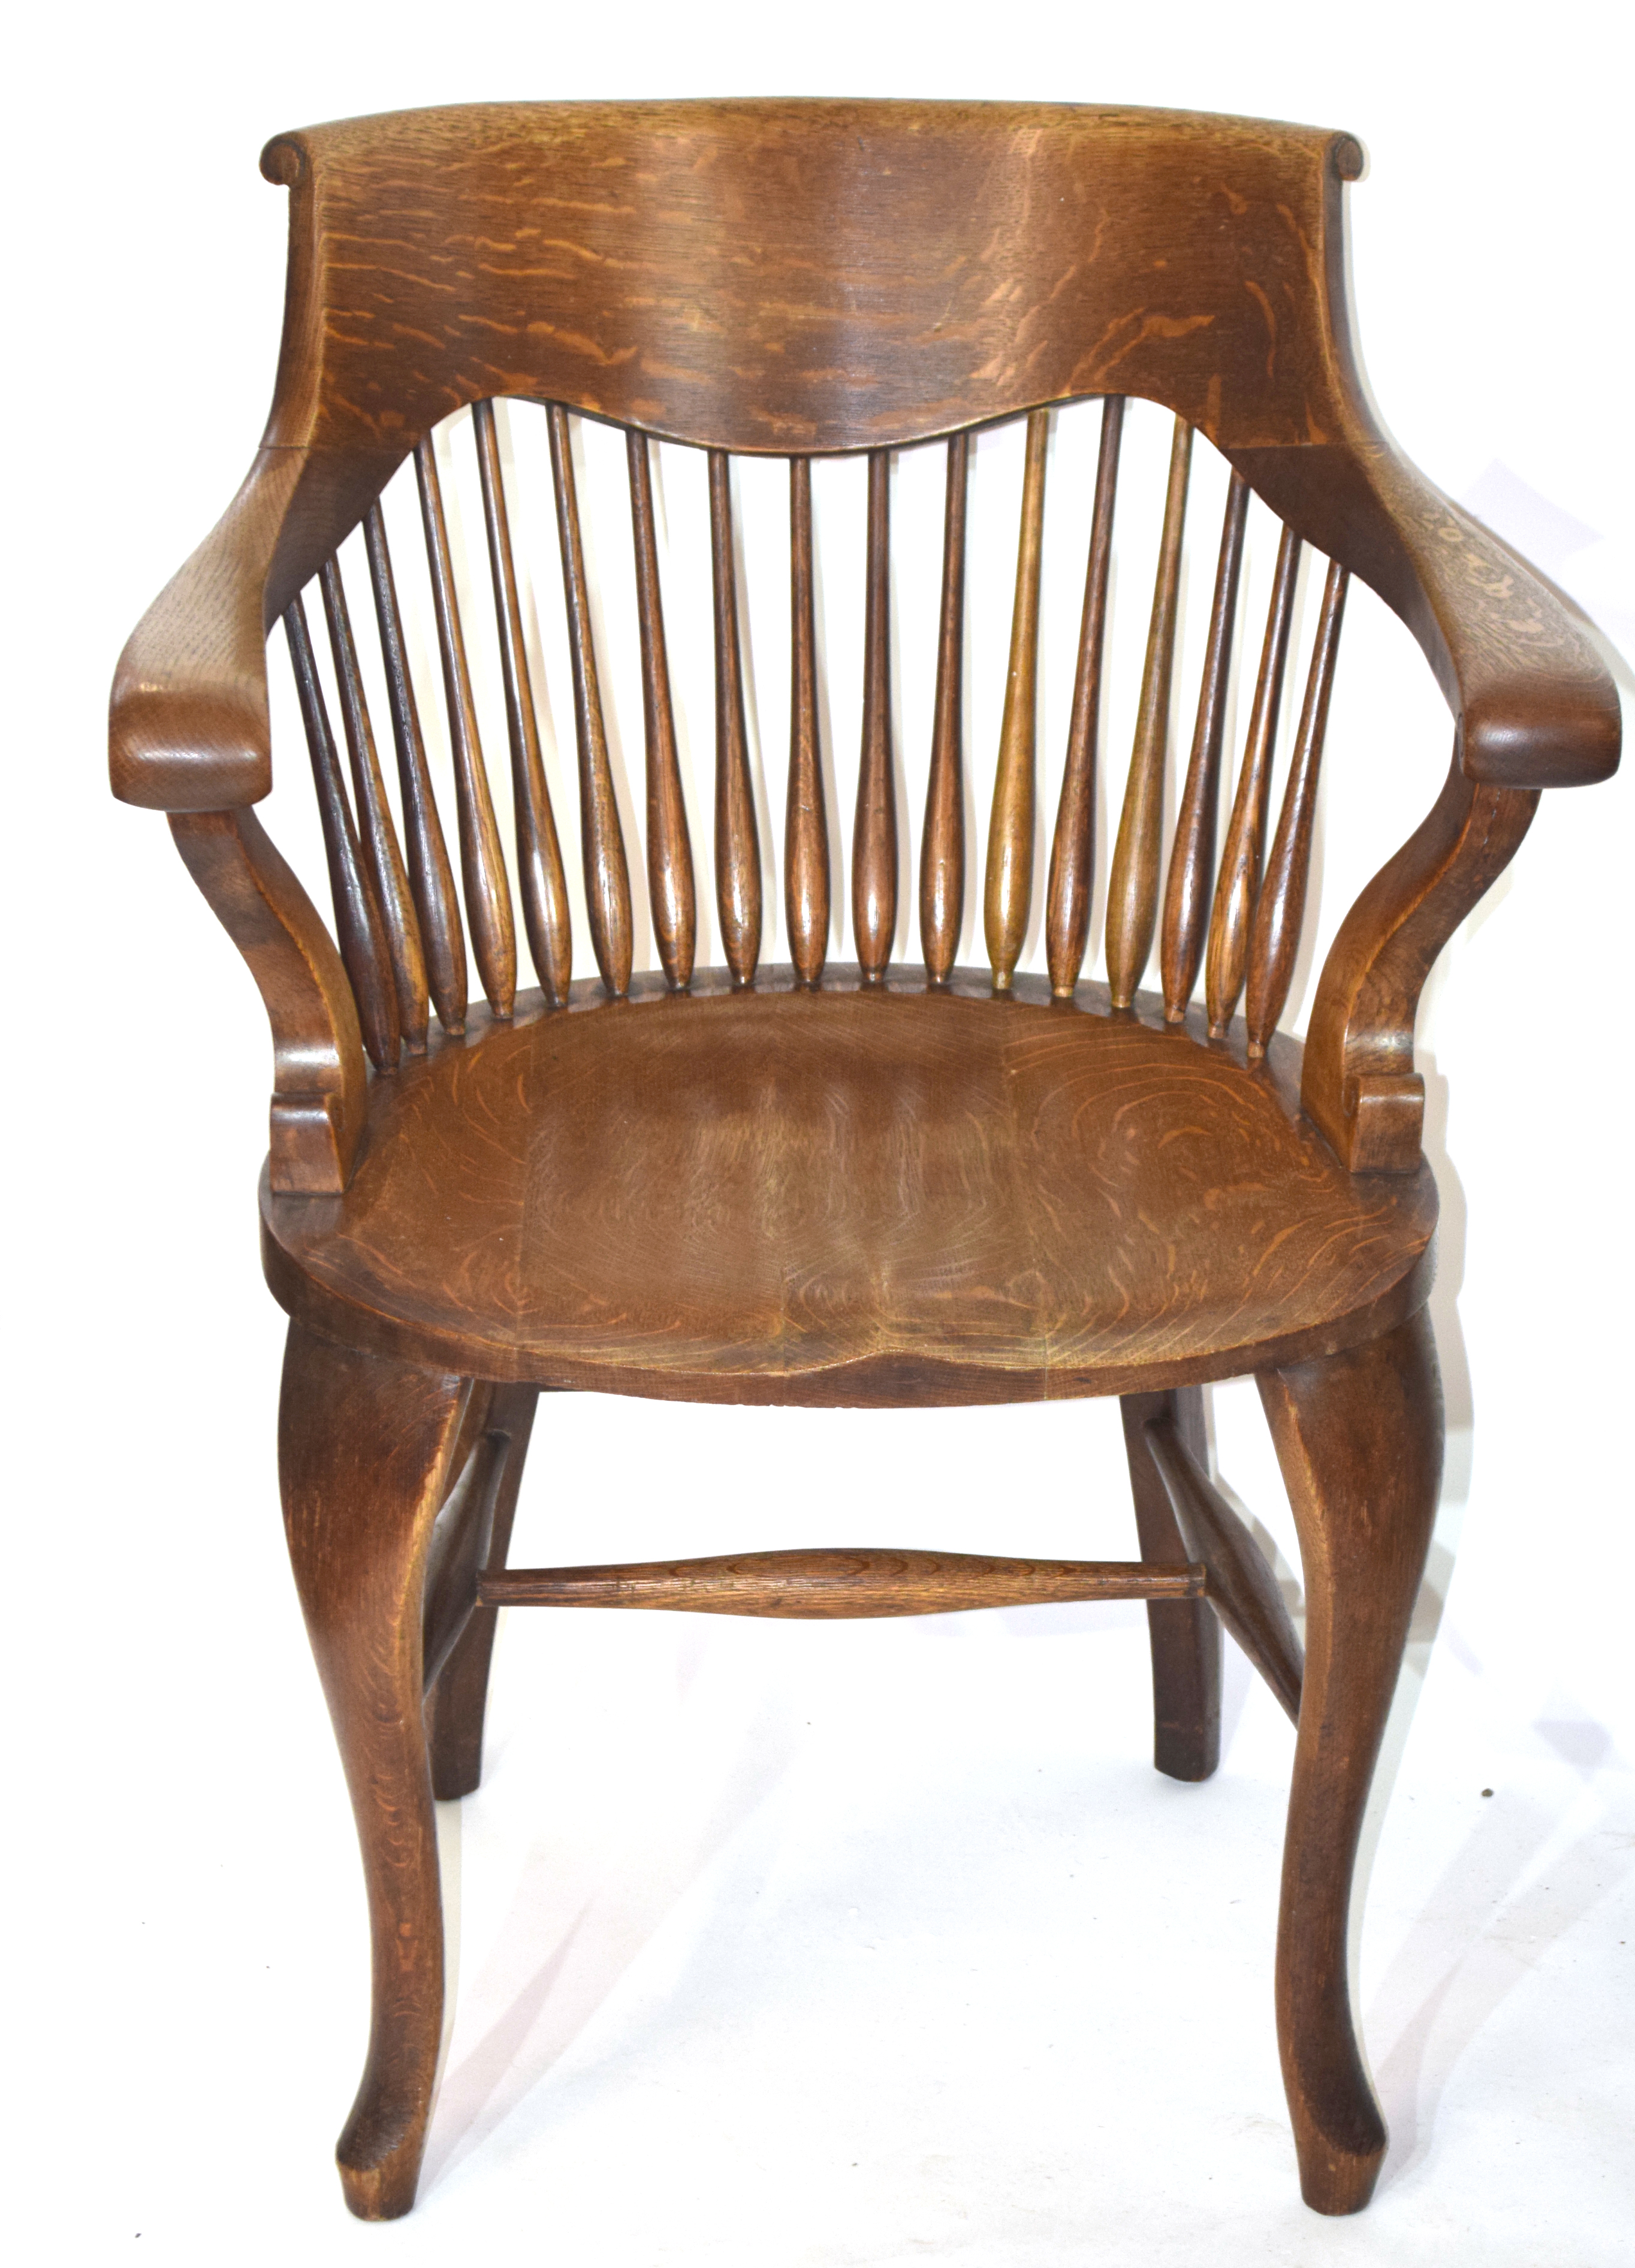 Set of four late 19th century North country oak bow and spindle back chairs - Image 2 of 2